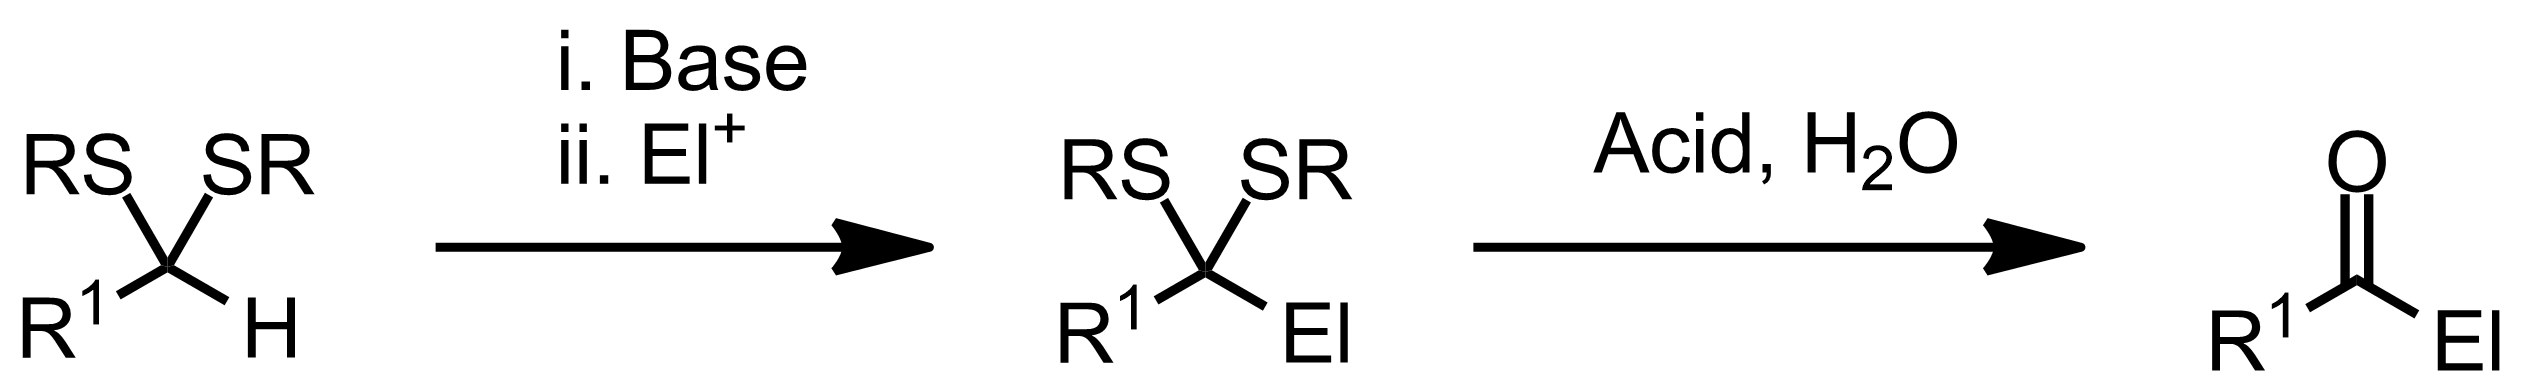 Schematic representation of the Corey-Seebach Reaction.